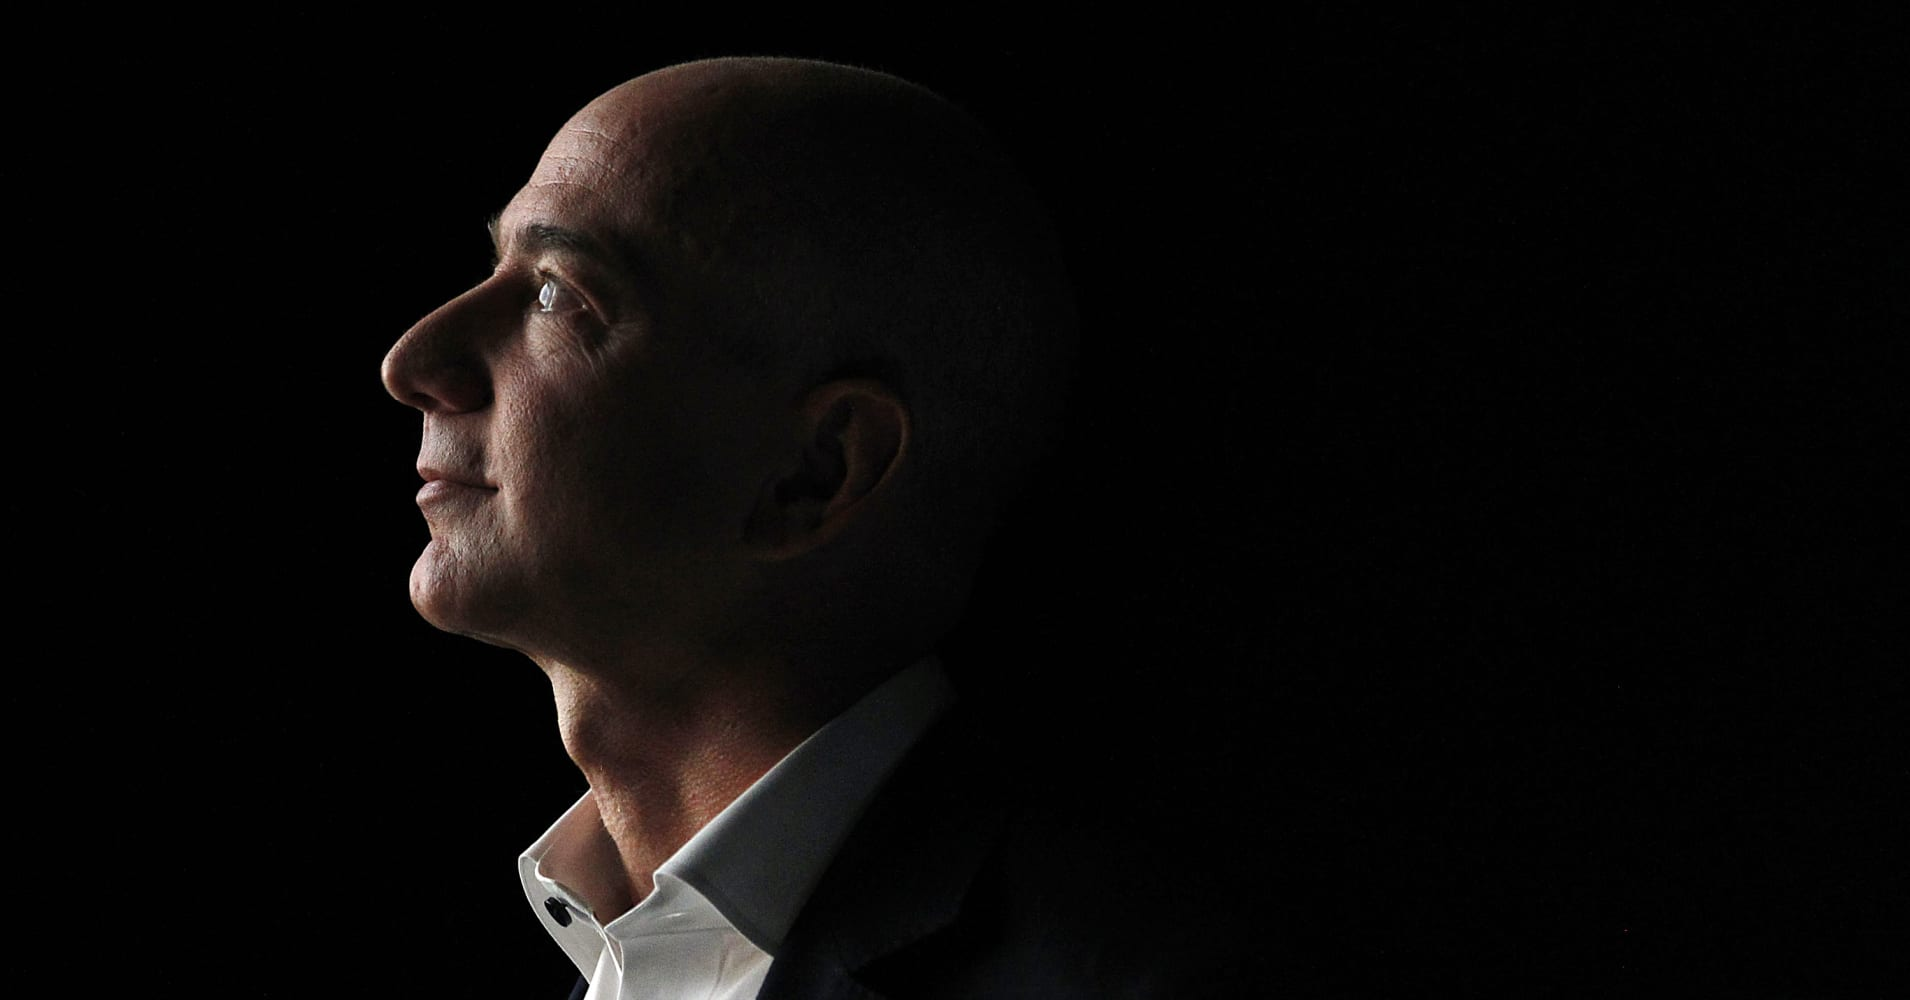 Jeff Bezos is the World's Richest Man